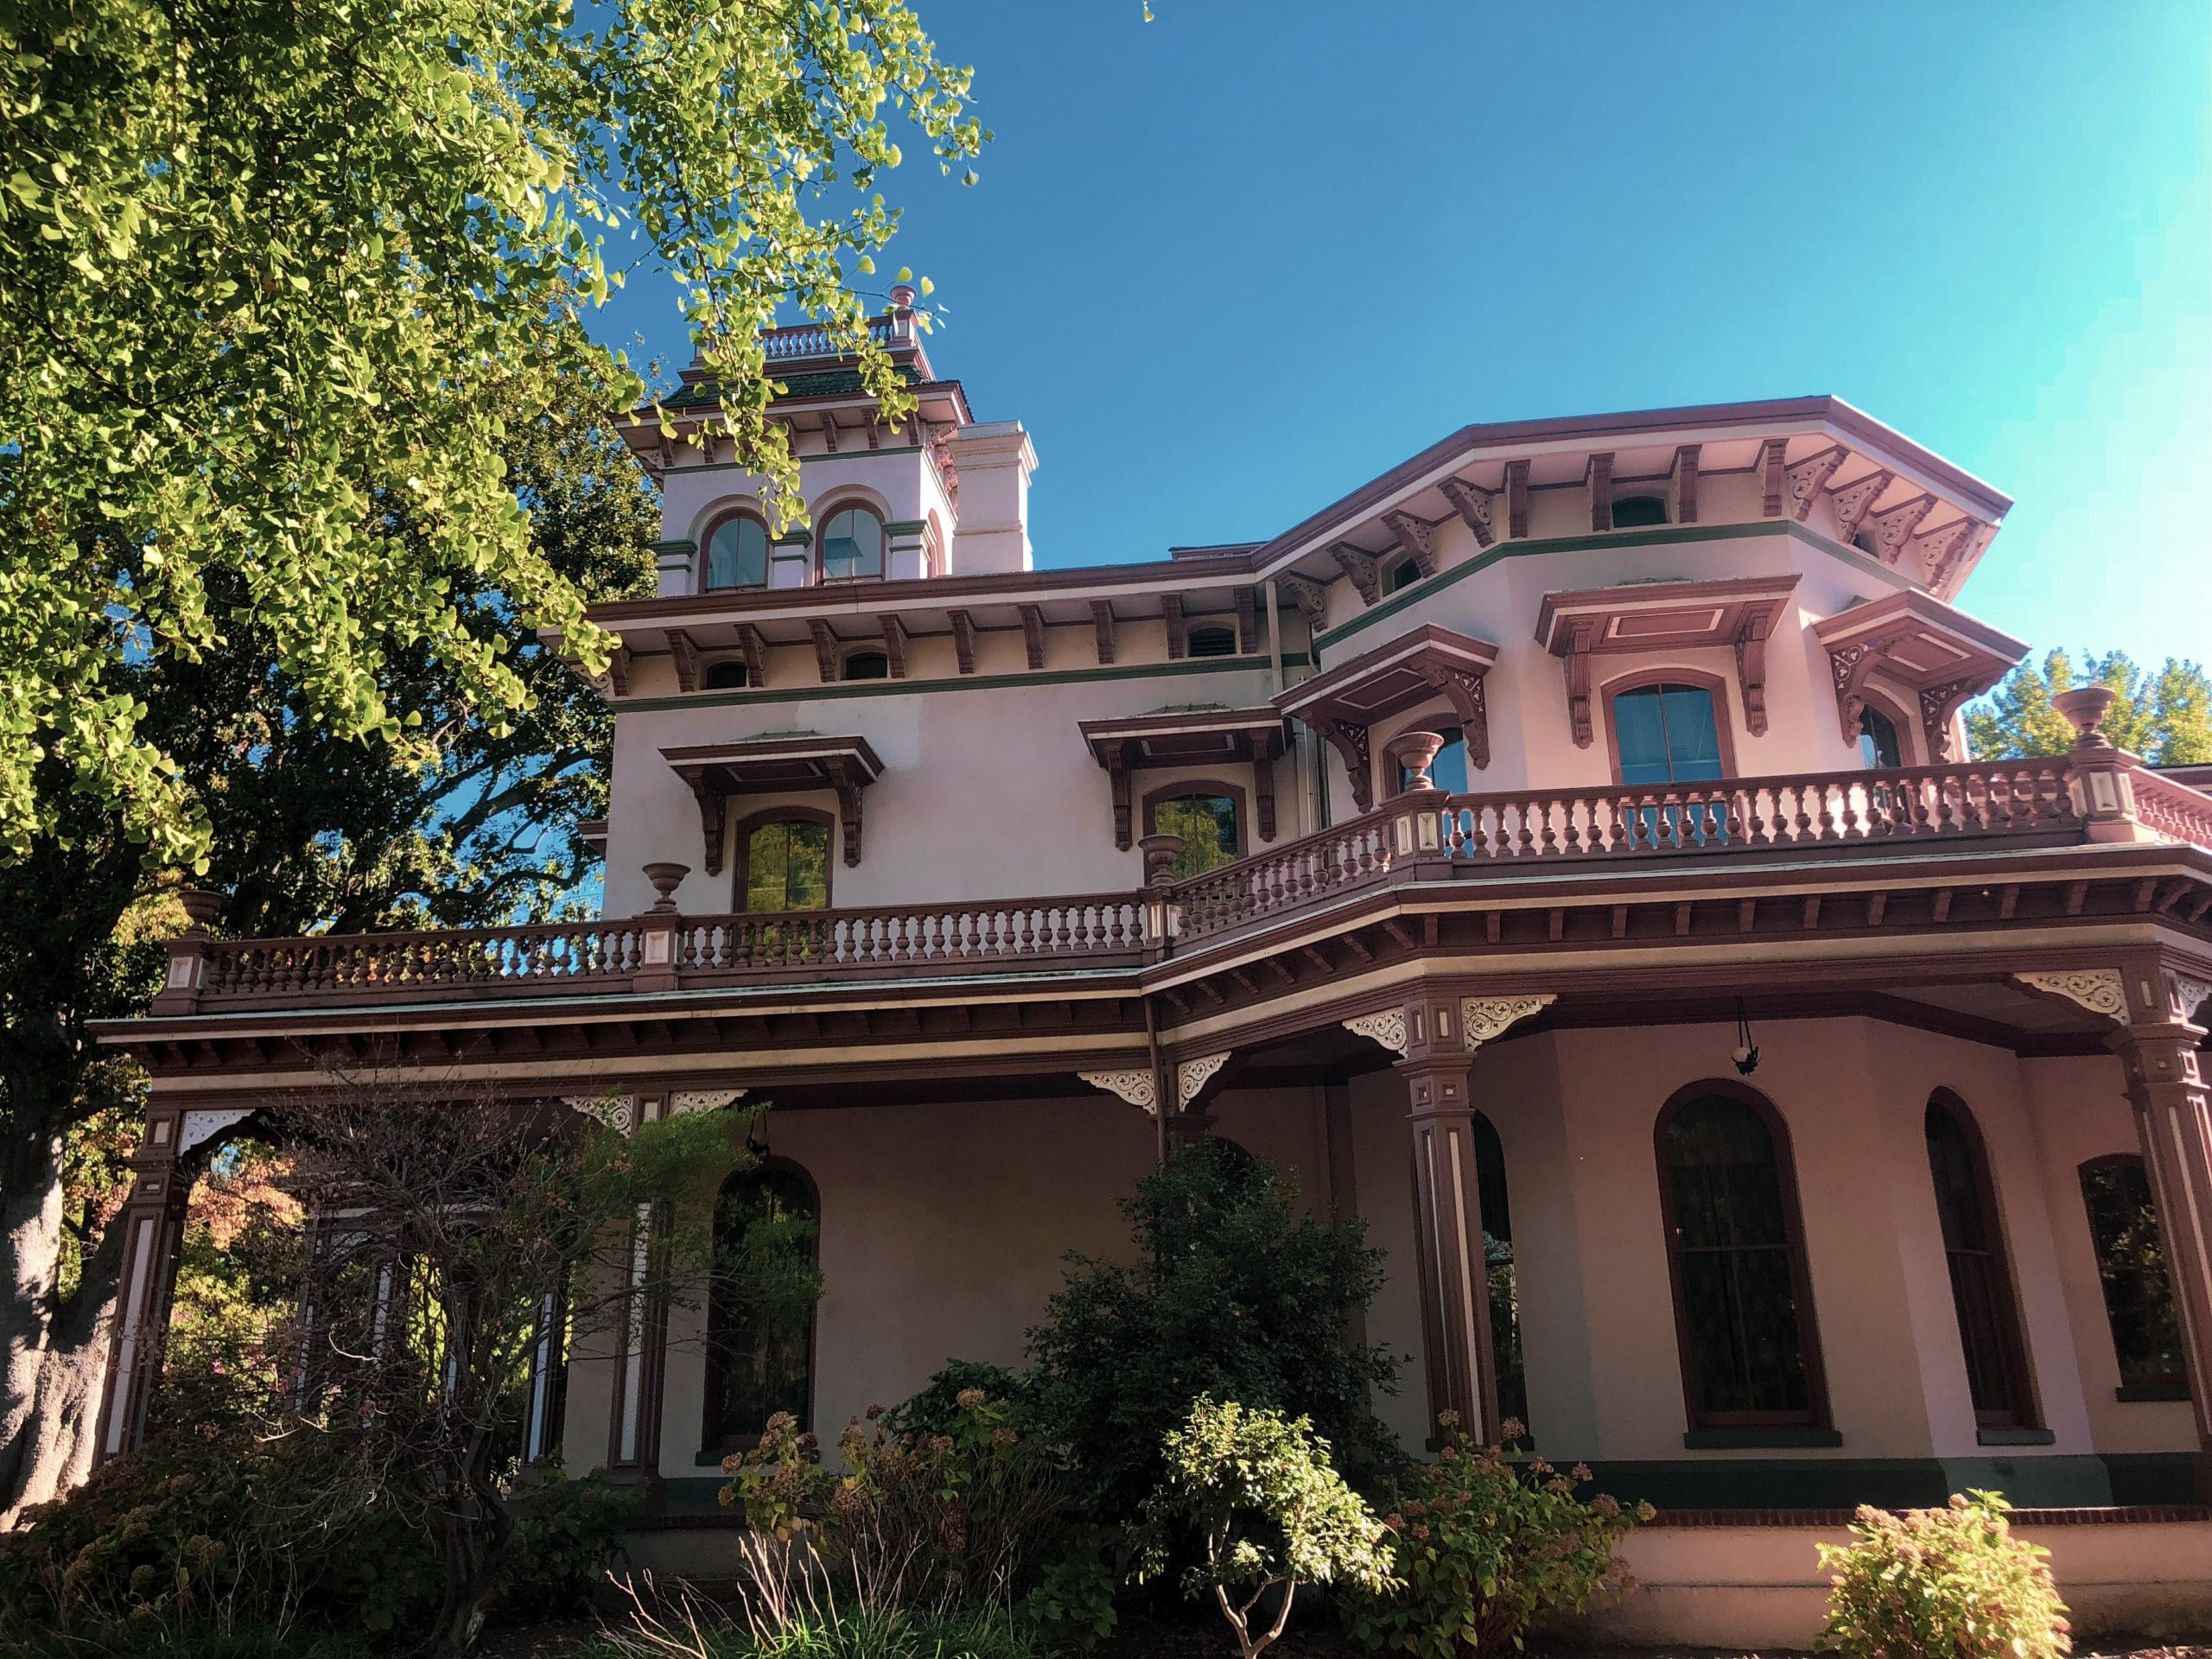 Visting Chico S Bidwell Mansion Fitting In Adventure